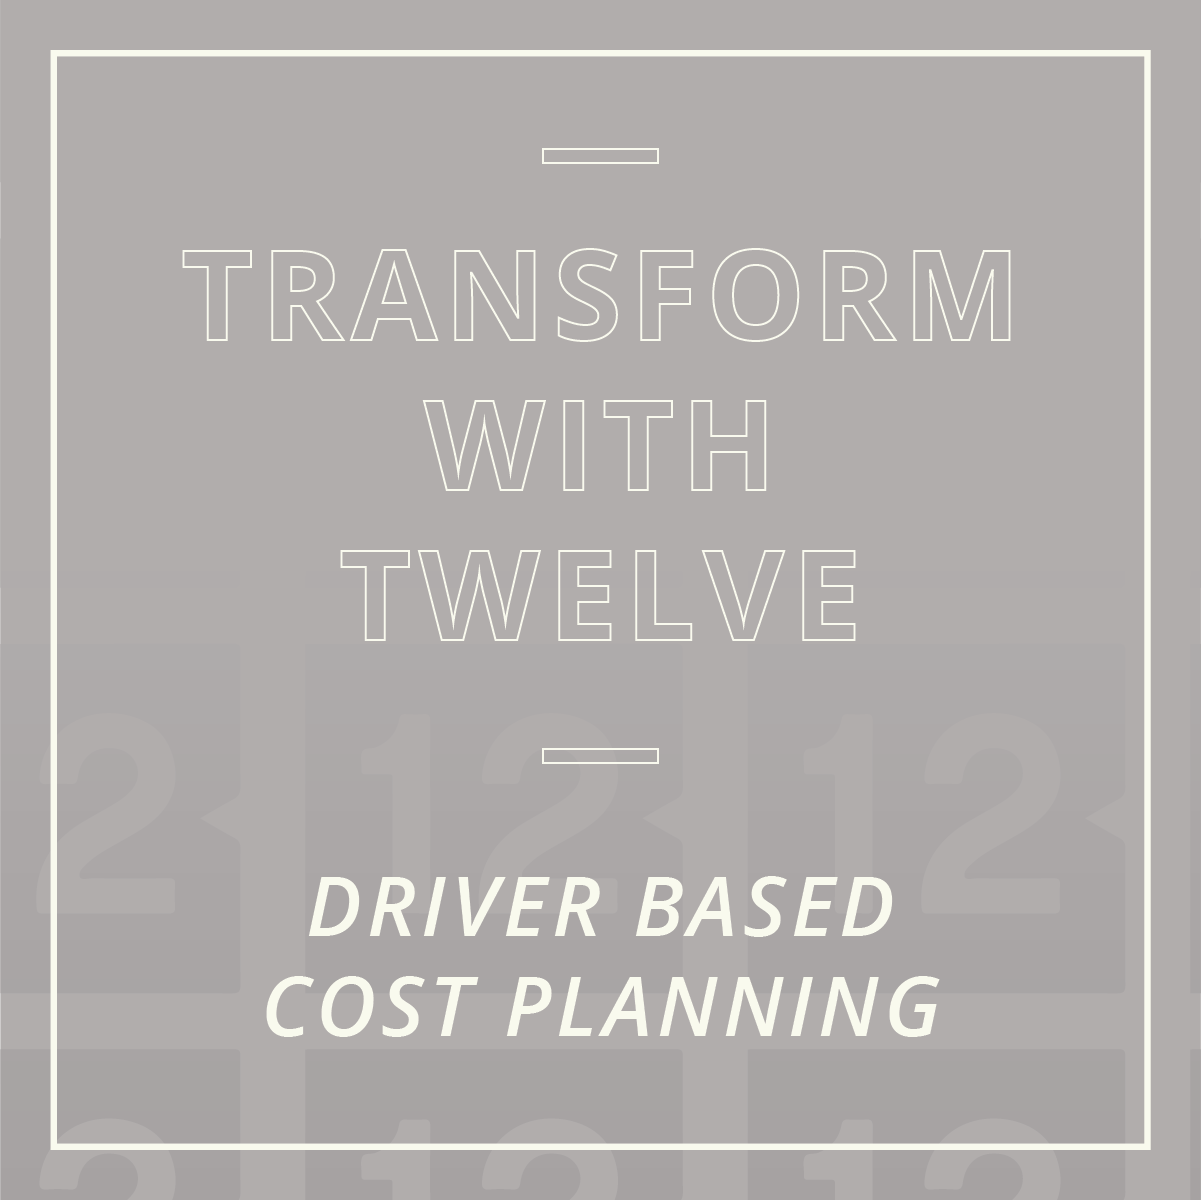 Driver Based Cost Planning